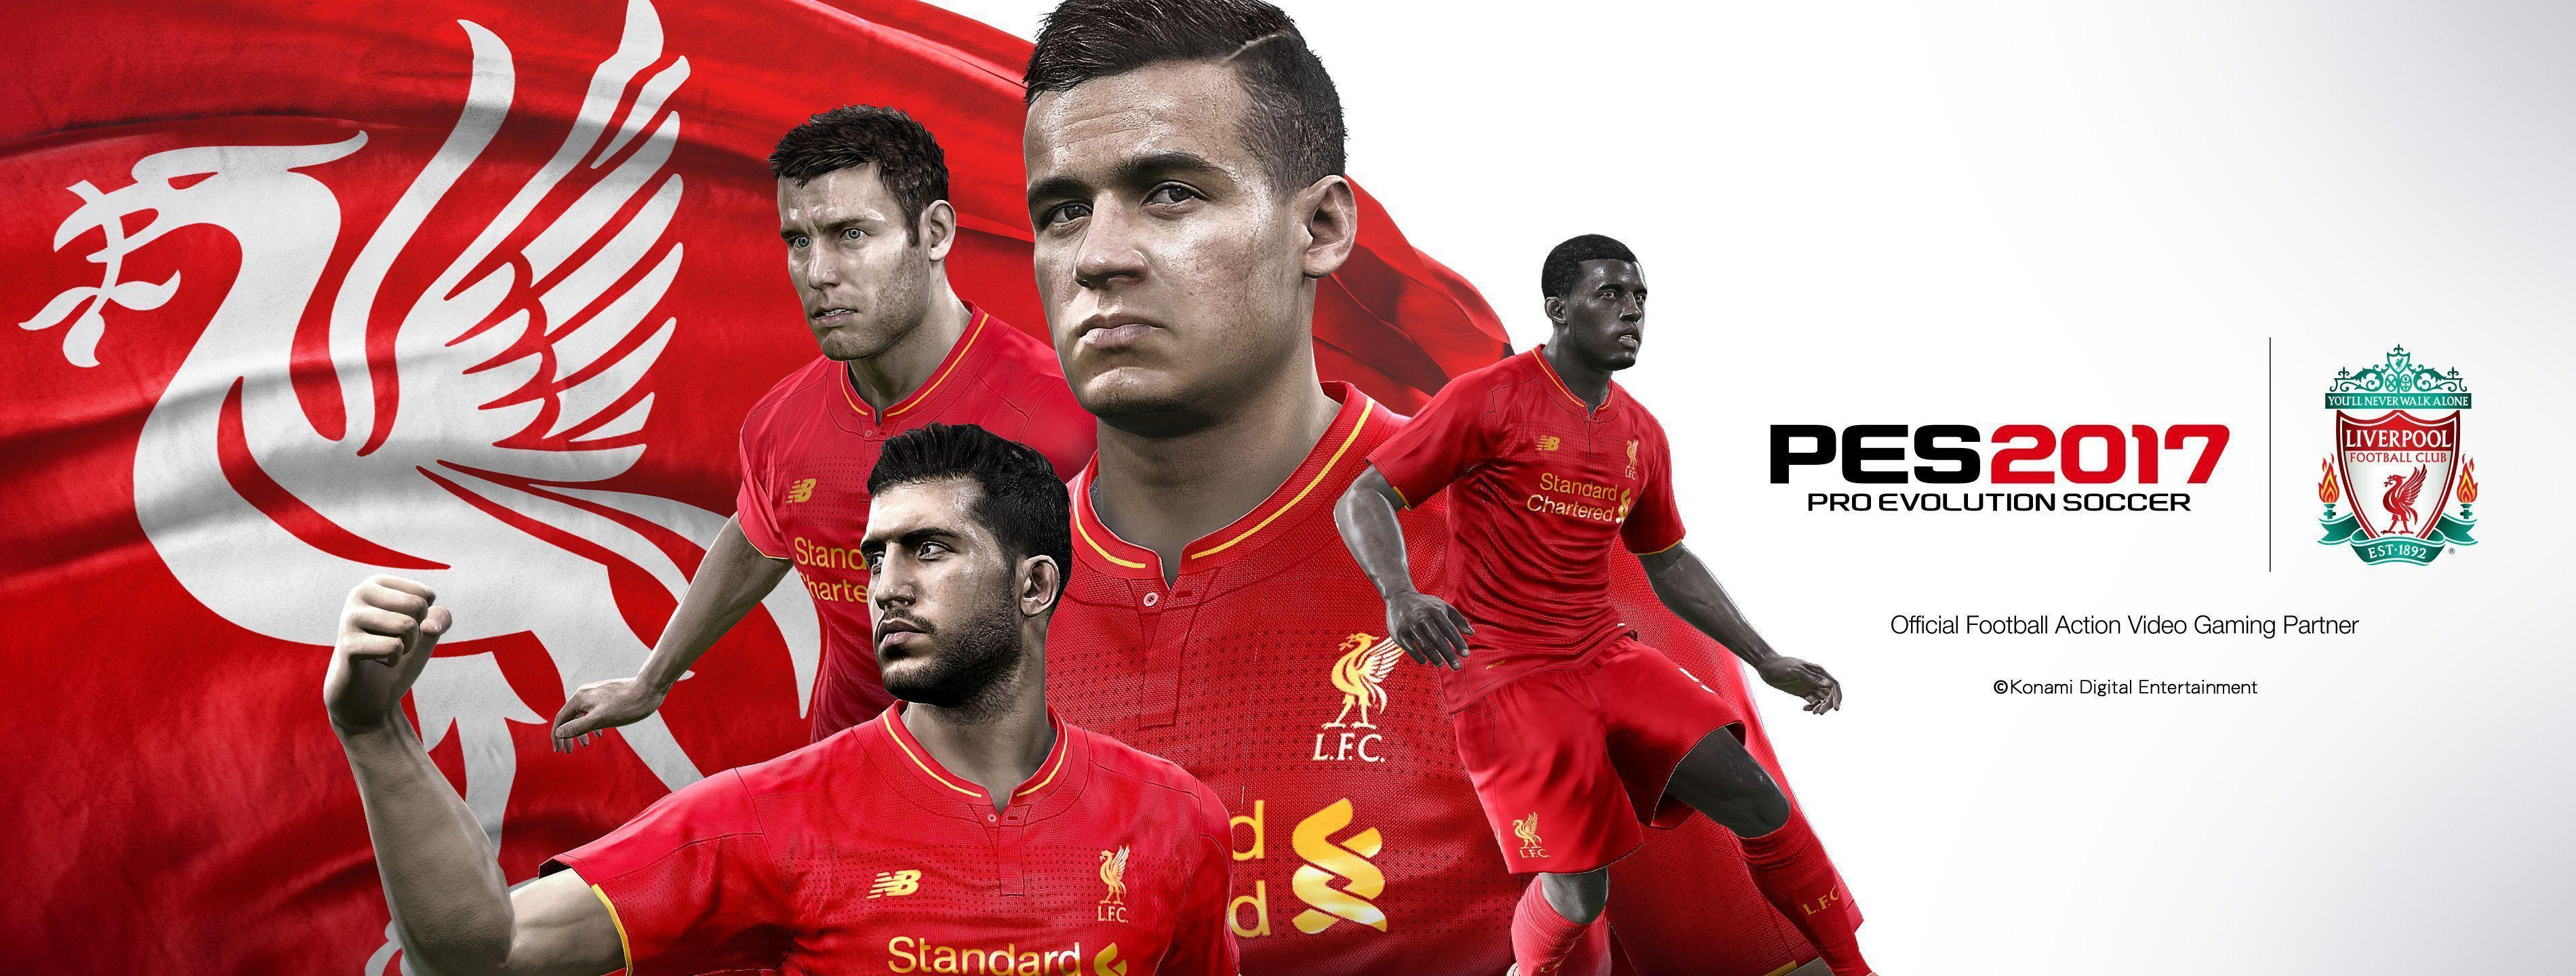 Liverpool Wallpapers 2017 3800x1440